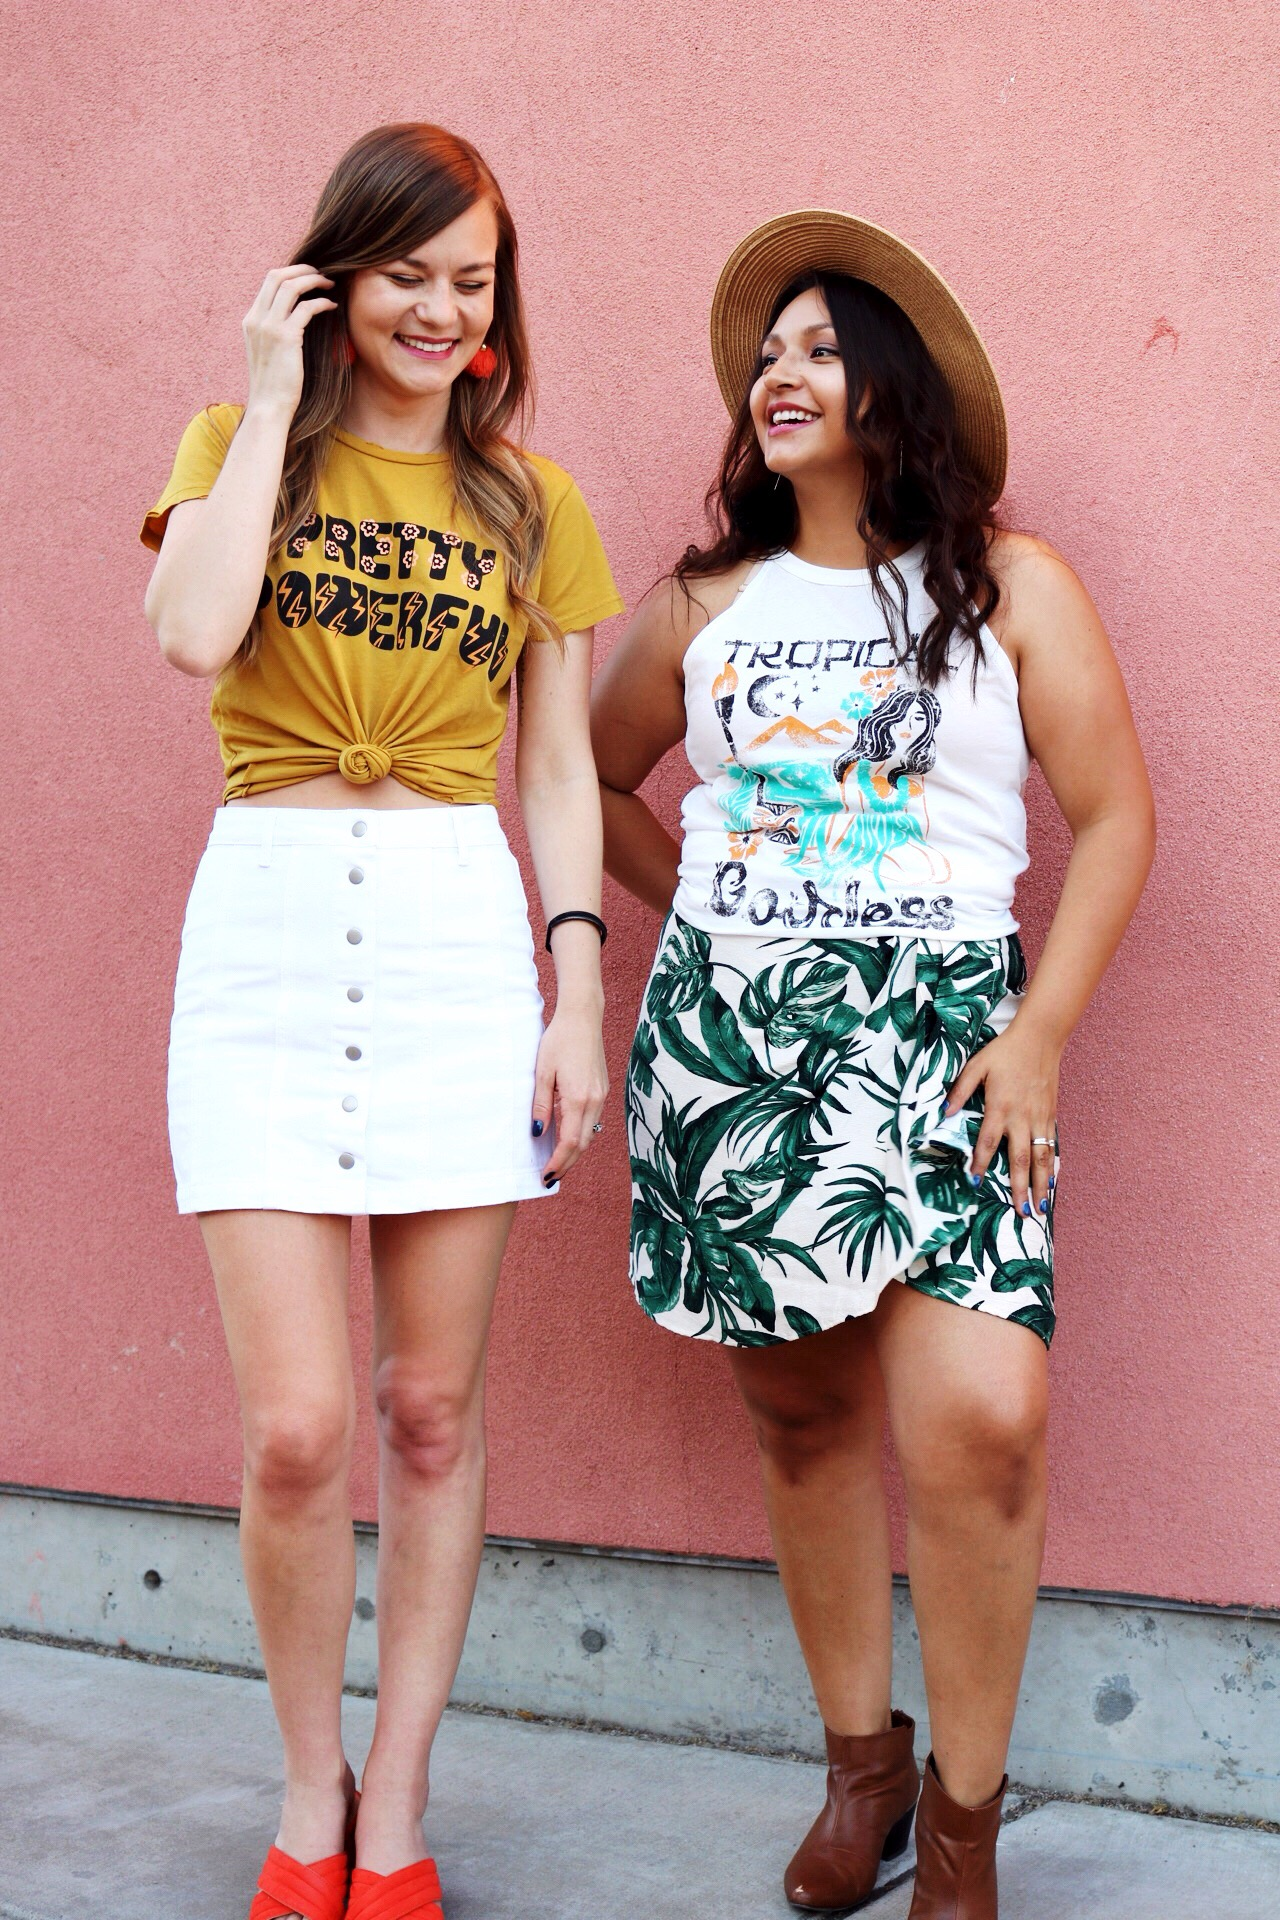 National Best Friend Day/ Summer Fashion includes graphic tees and mini skirts